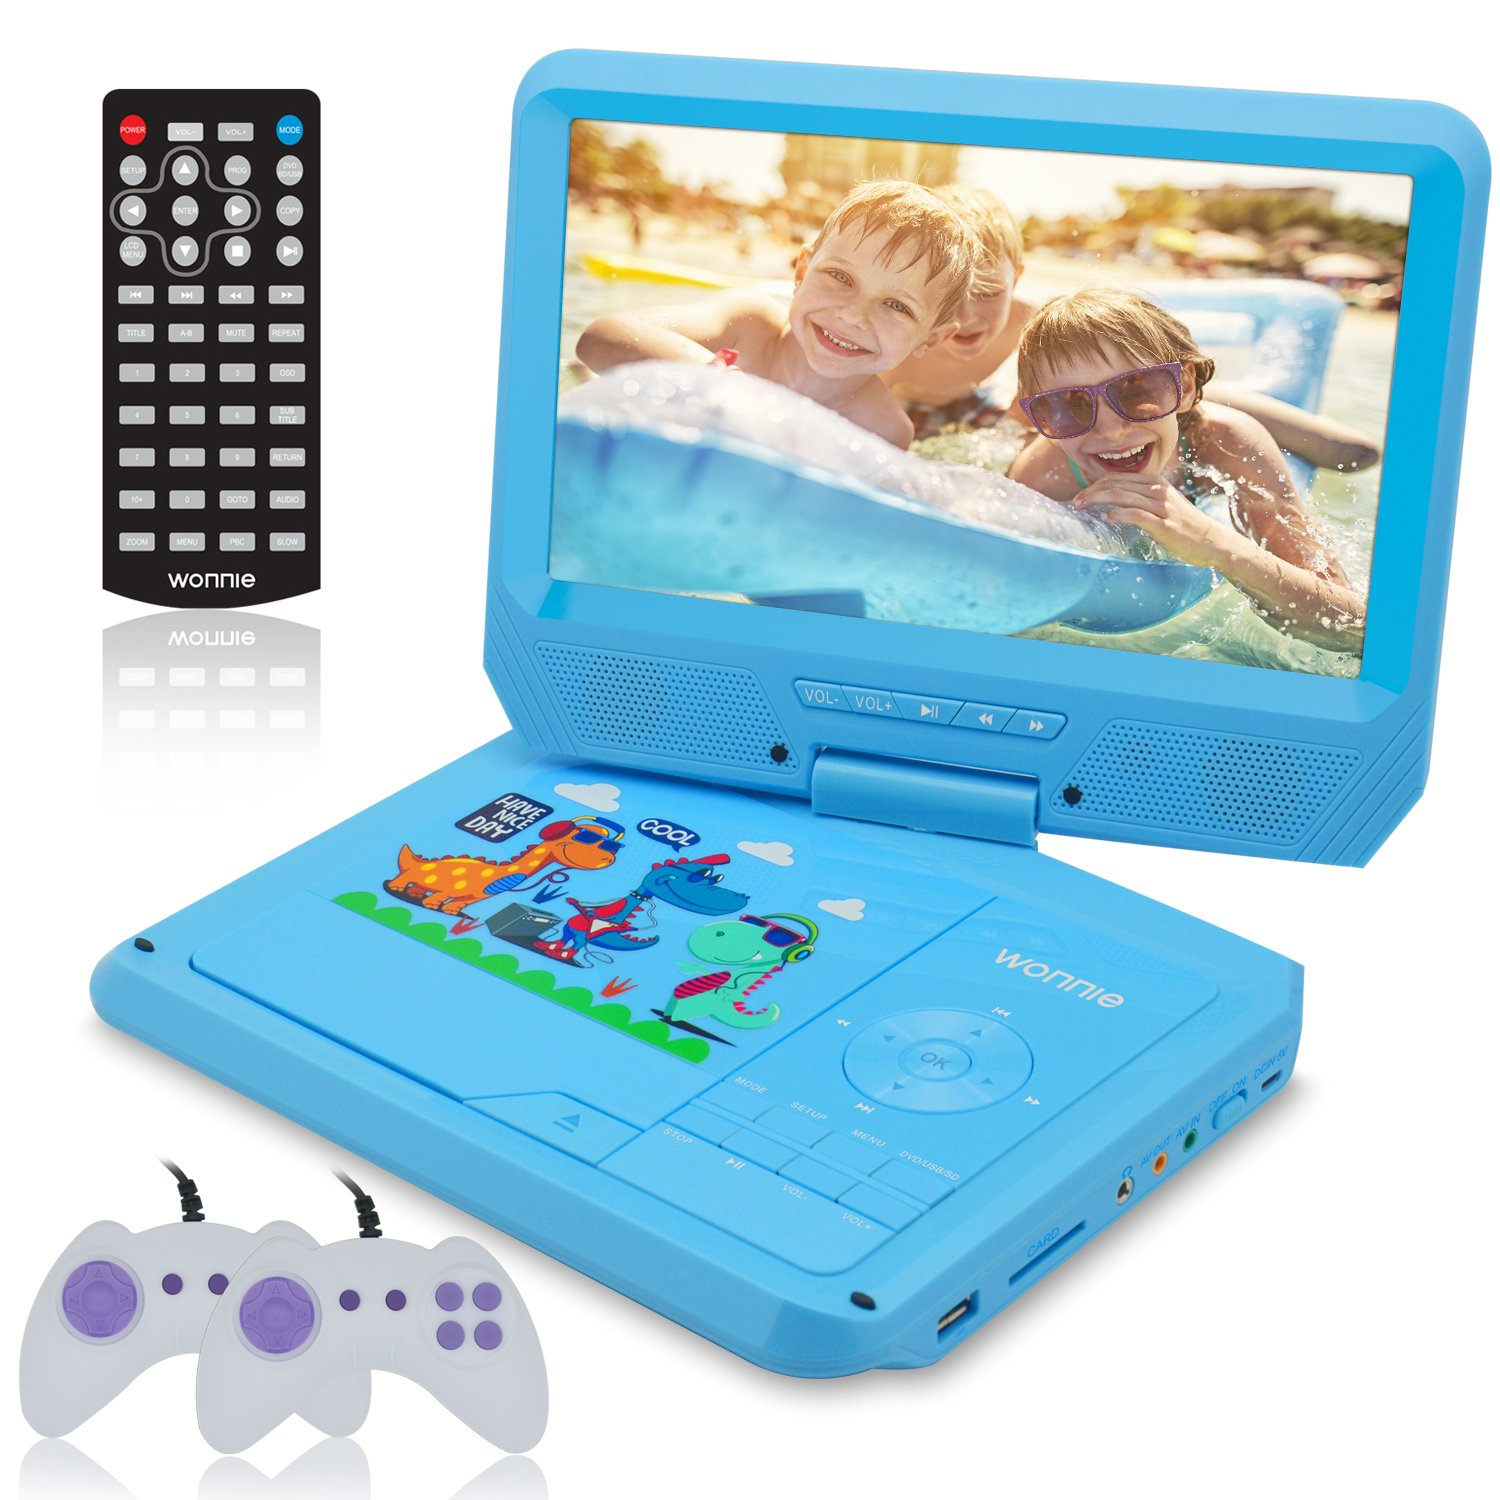 WONNIE 9.5 Inch Kids Portable DVD Player for Car with Games Function, USB/SD Slot (Blue)